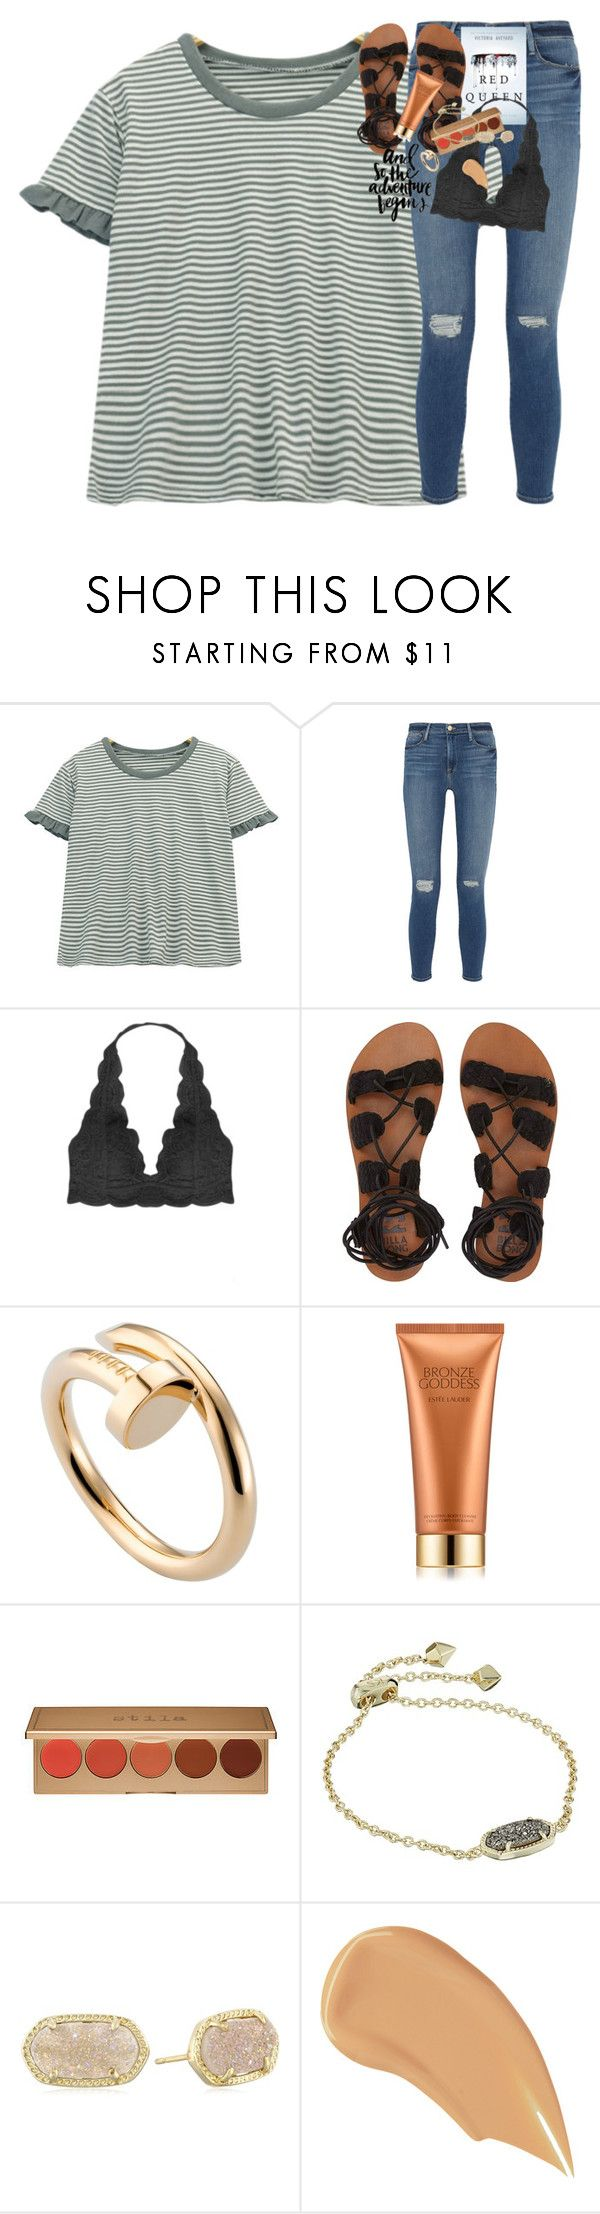 """""""easter break!!!"""" by classynsouthern ❤ liked on Polyvore featuring Chicnova Fashion, Frame, Humble Chic, Billabong, PAM, Cartier, Estée Lauder, Stila, Kendra Scott and NARS Cosmetics"""